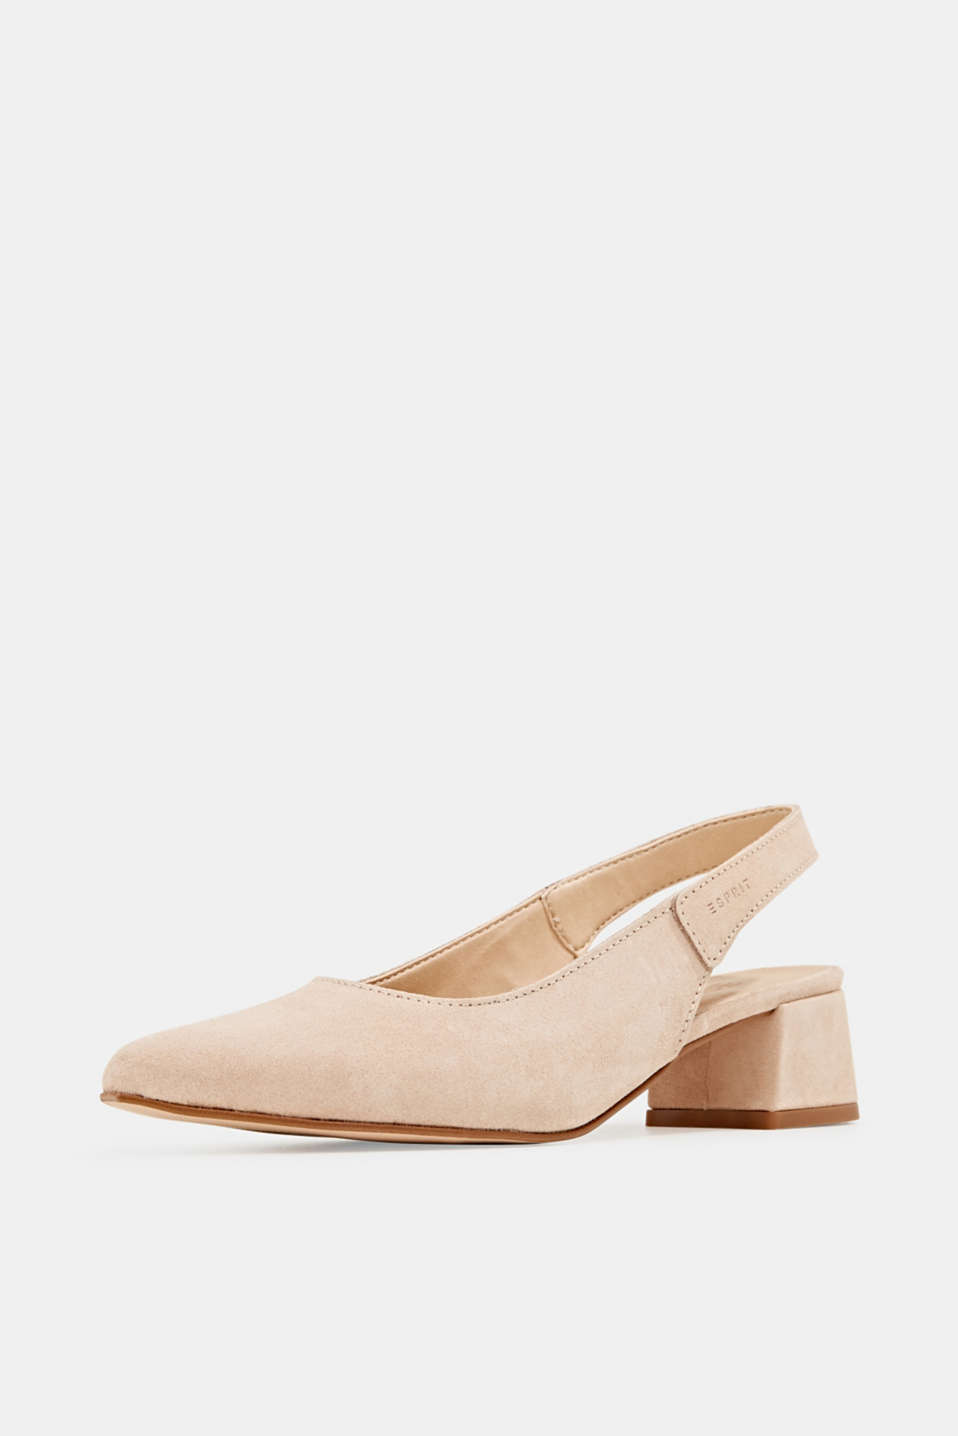 Leather sling back court shoes, NUDE, detail image number 2